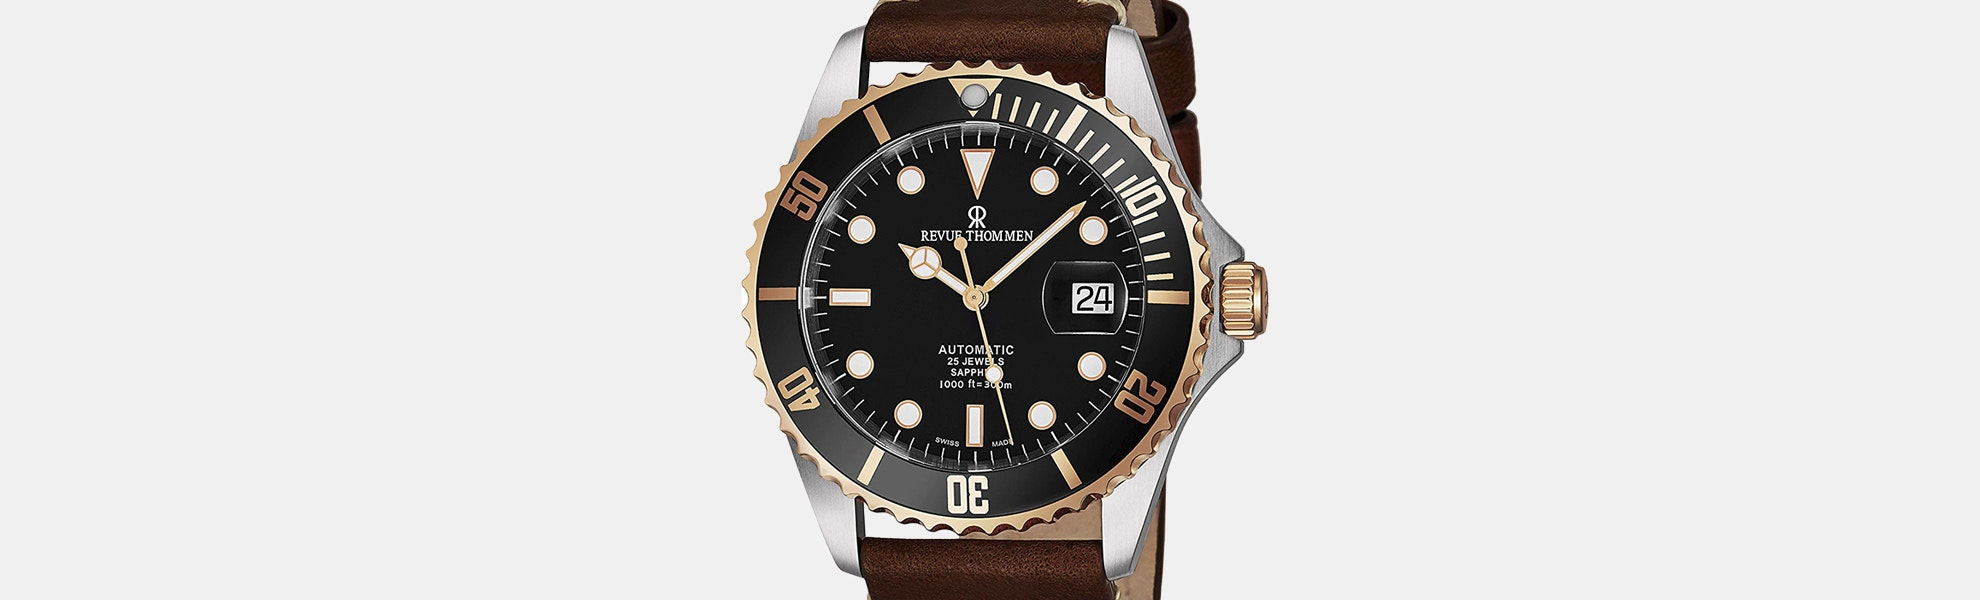 Revue Thommen XL Diver Automatic Watch